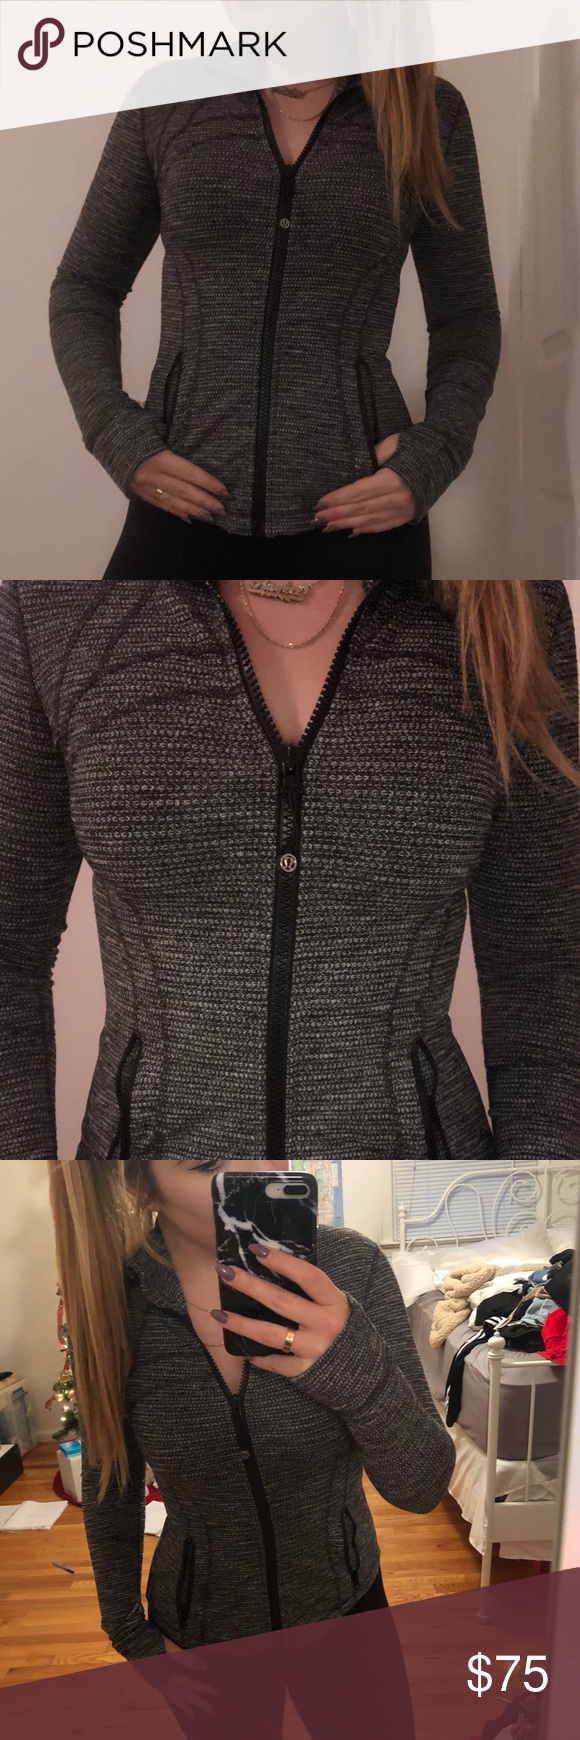 8ec0b0bd18d5a Lululemon Define Jacket Worn one or two times, Color: Luon Variegated Knit  Black Heathered Black, Great Condition! lululemon athletica Jackets & Coats